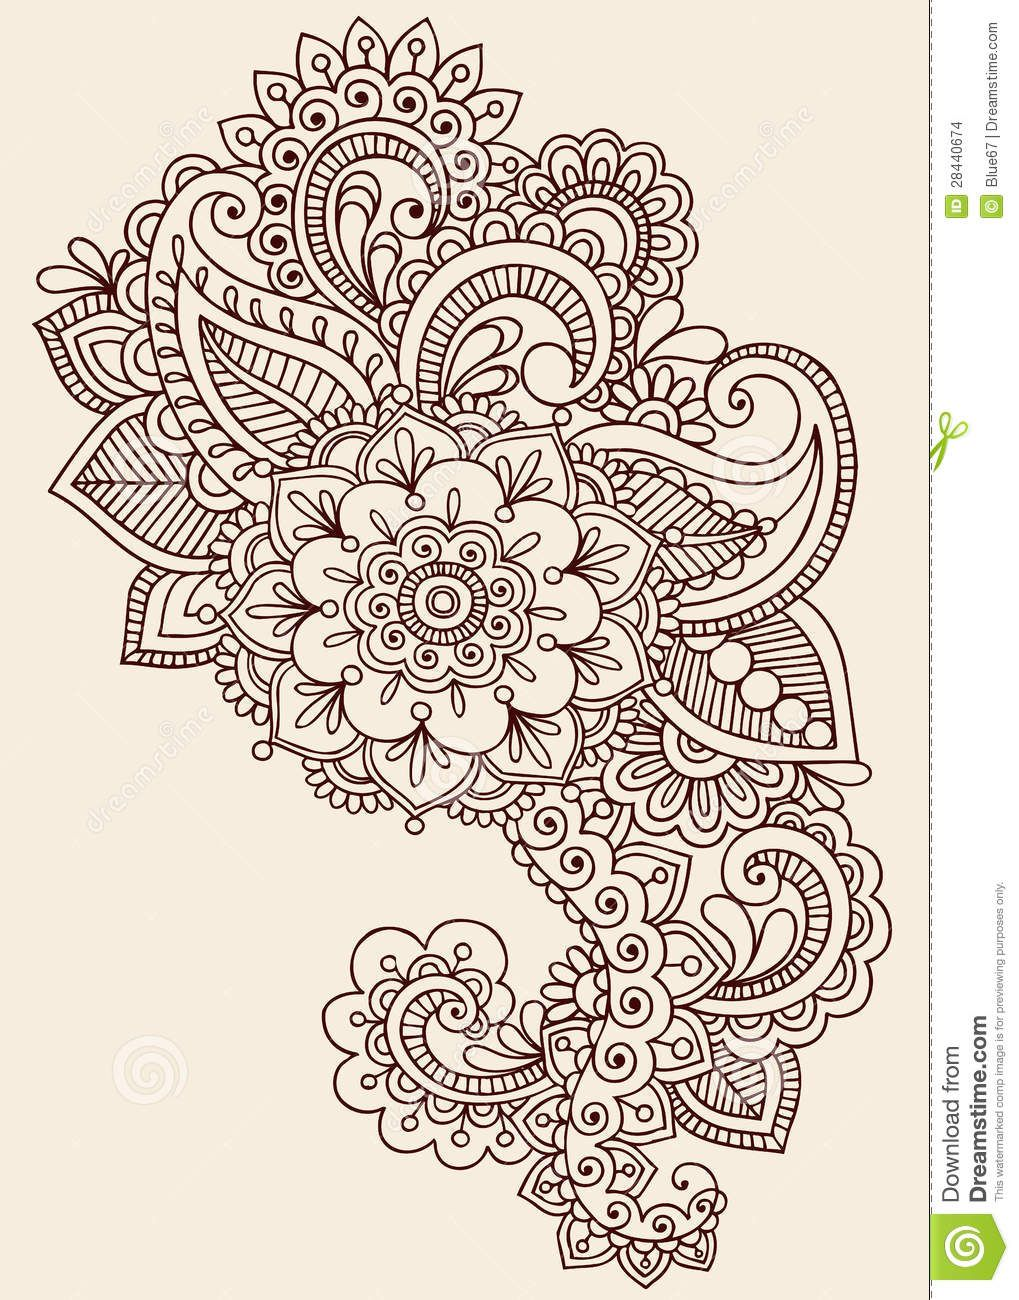 Mehndi Designs High Quality : Henna mehndi paisley doodle vector design download from